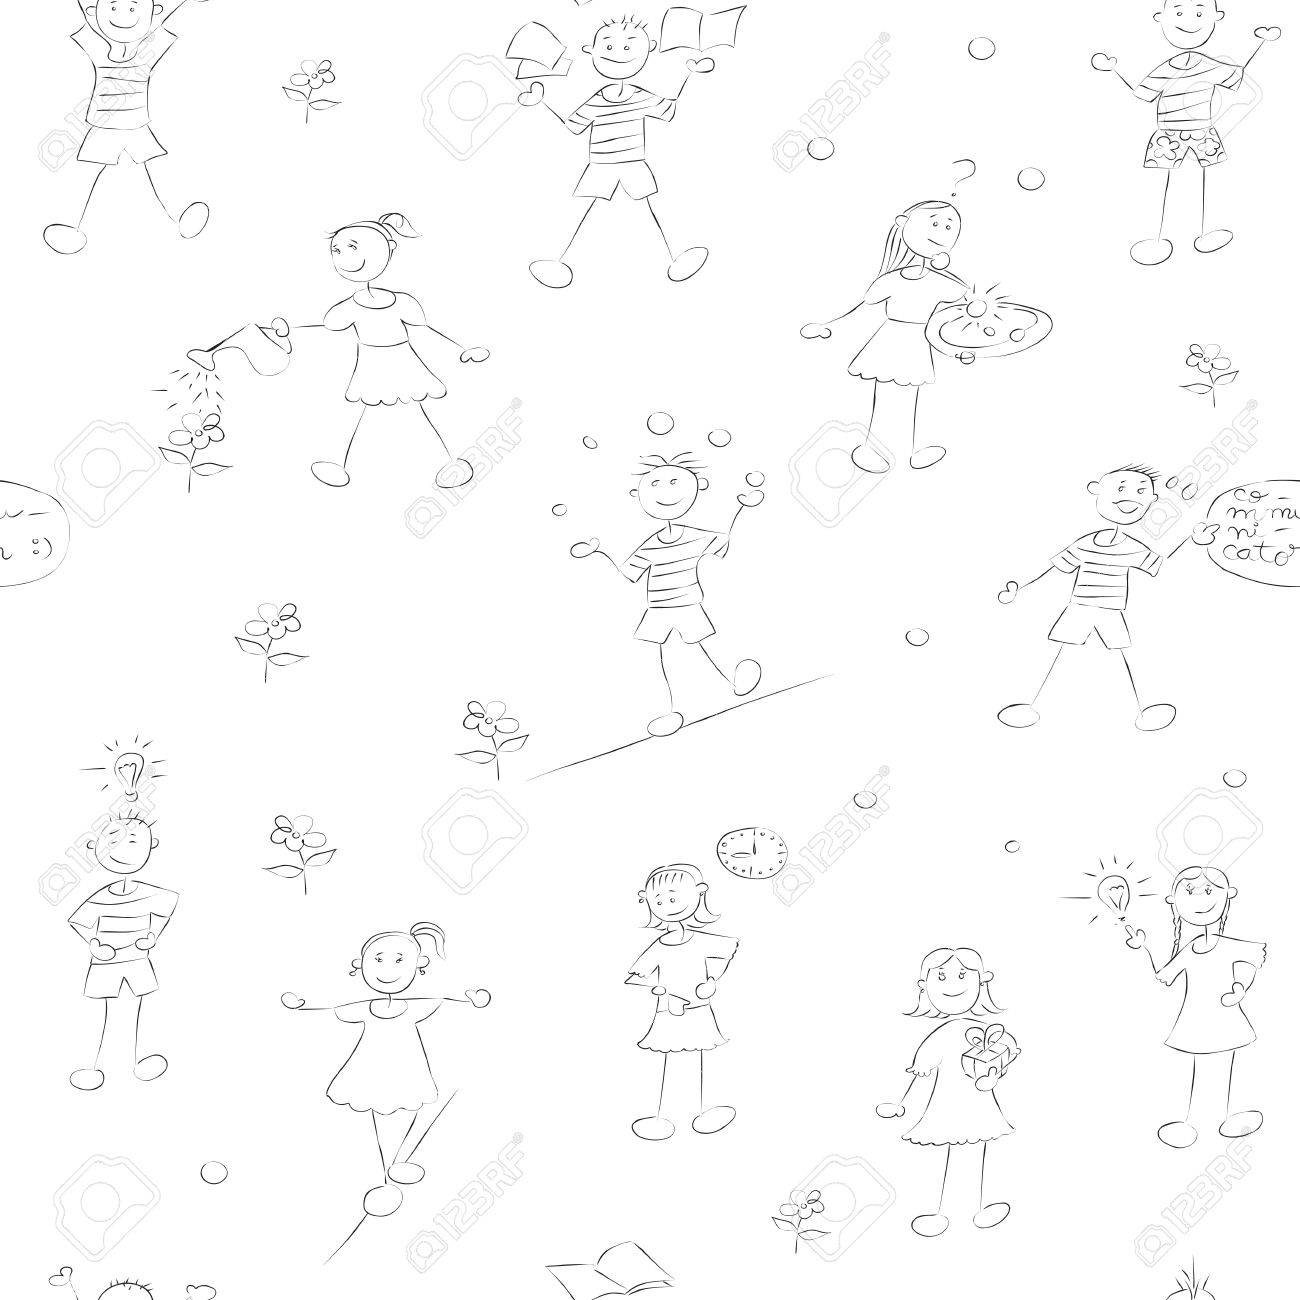 hand drawn school kids pattern with boys and girls doodles over white Stock Vector - 13624100